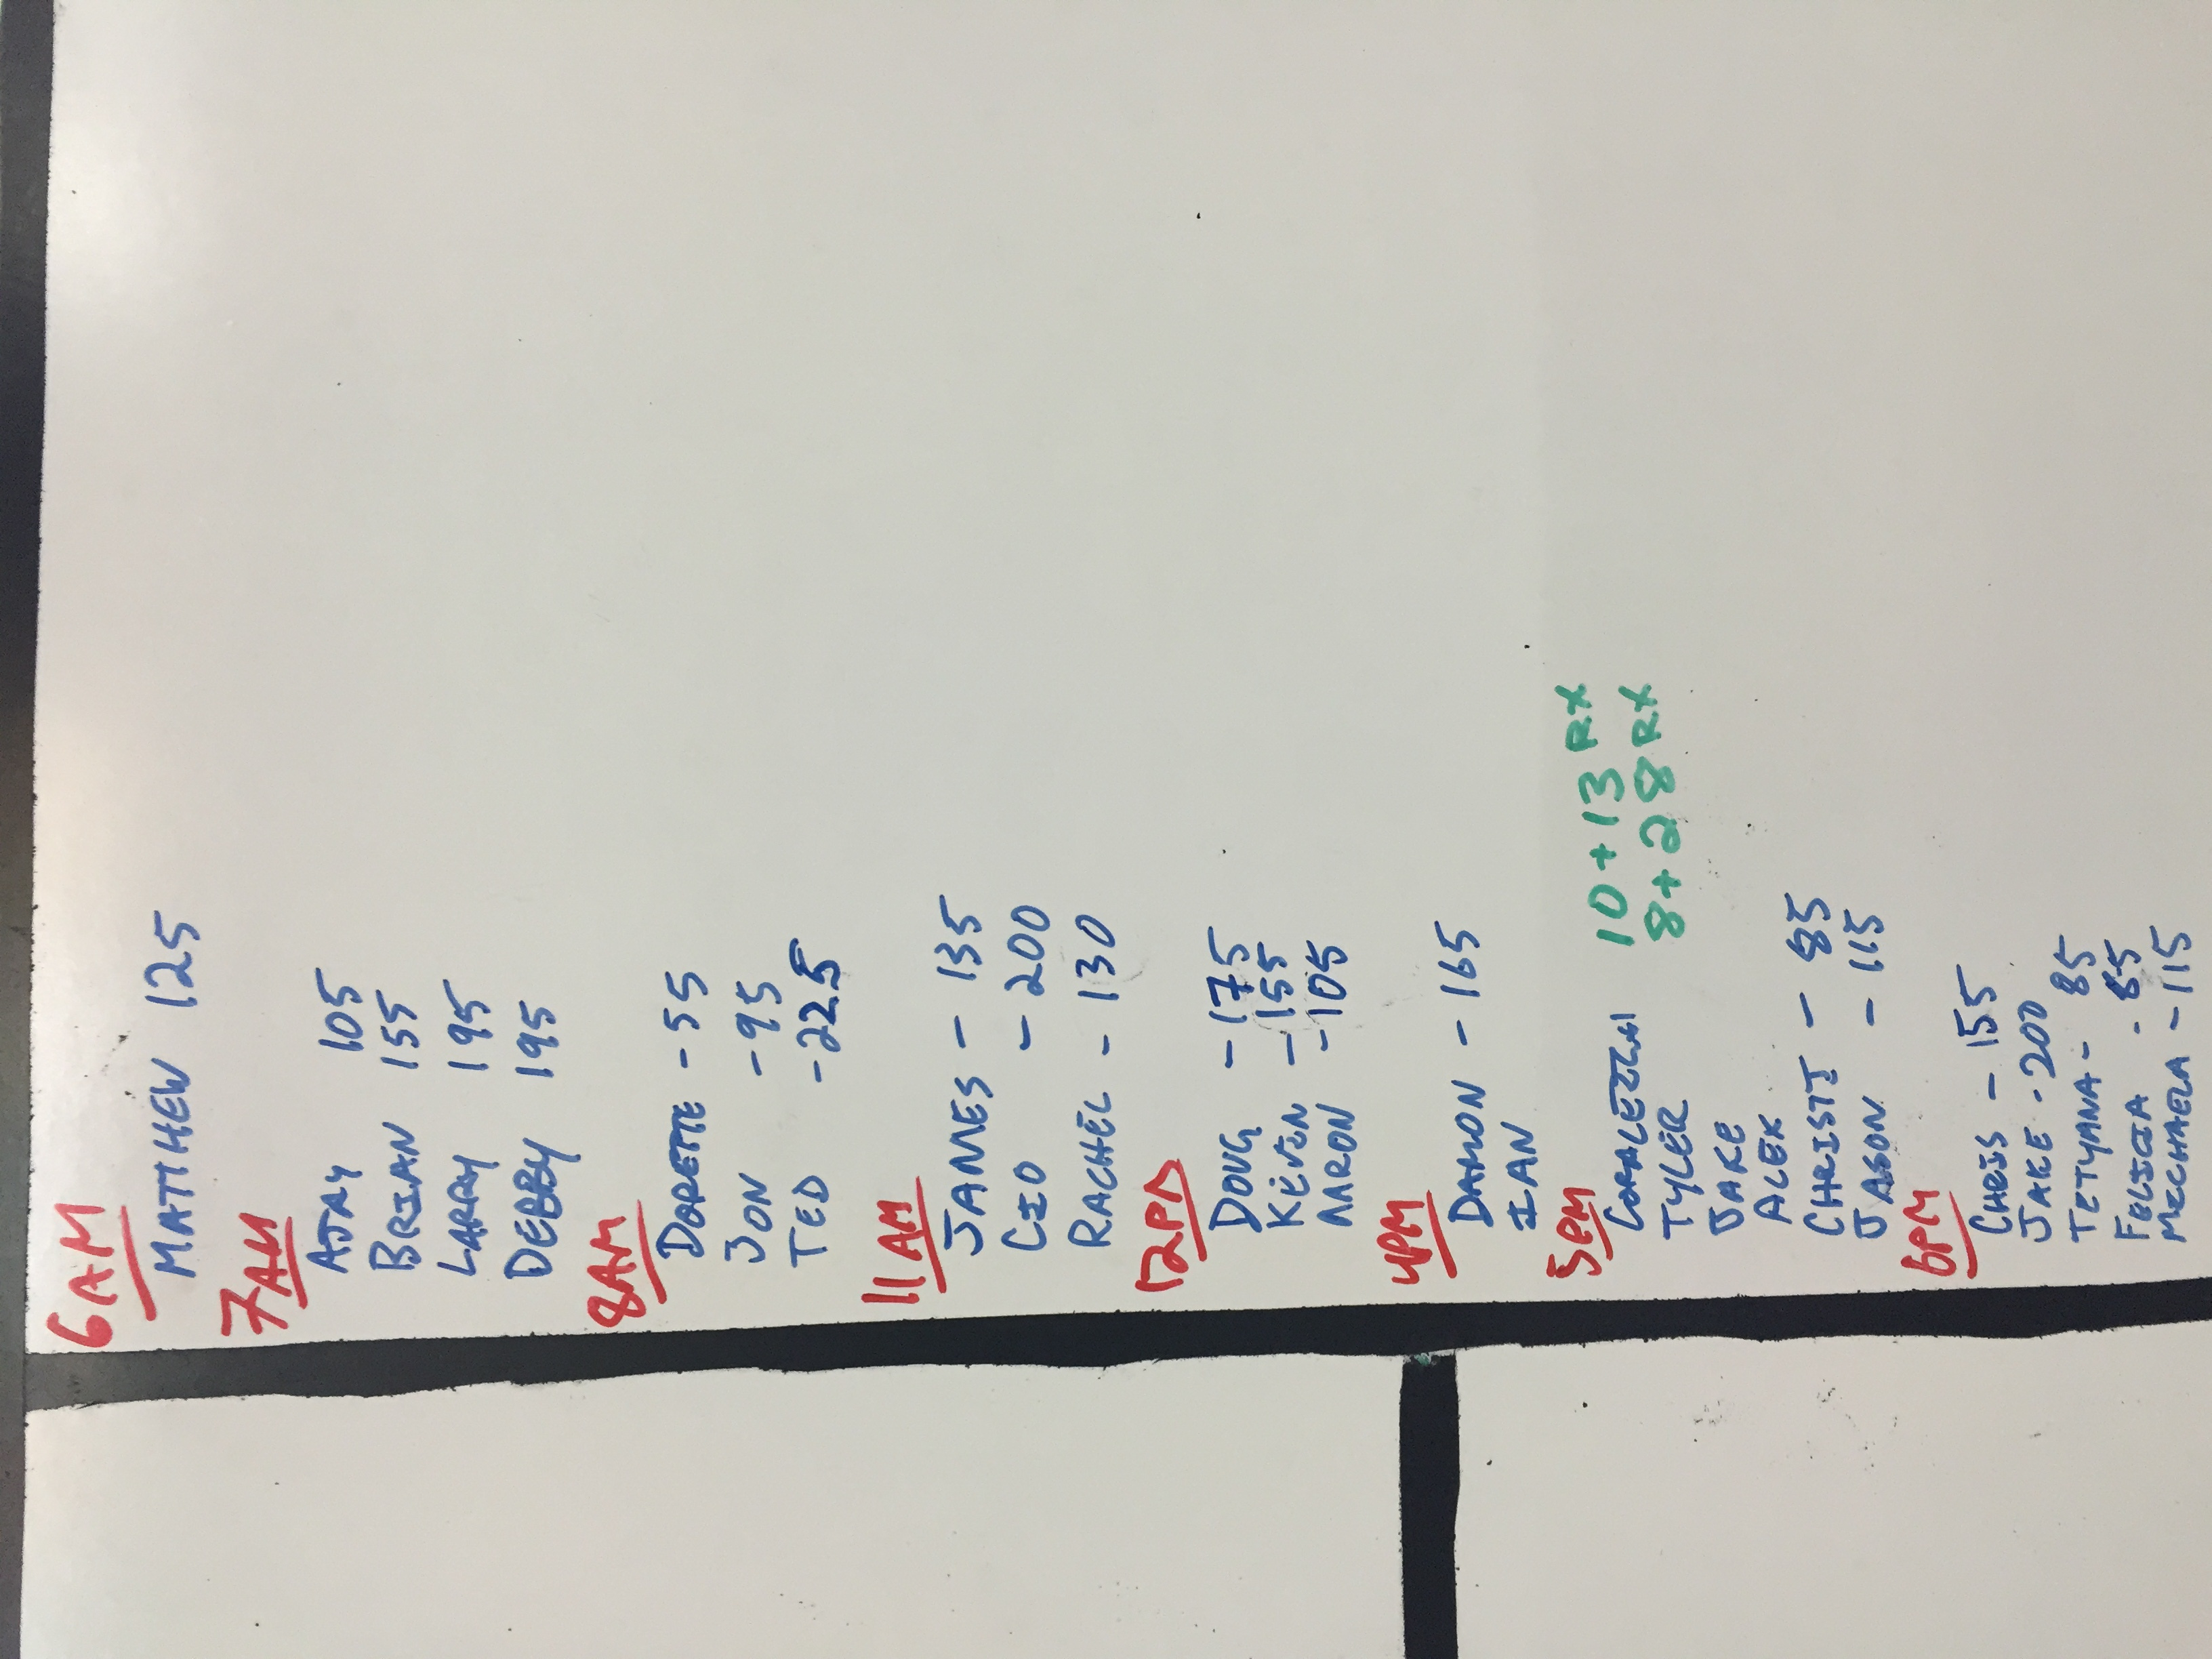 Oct 16 WOD Results